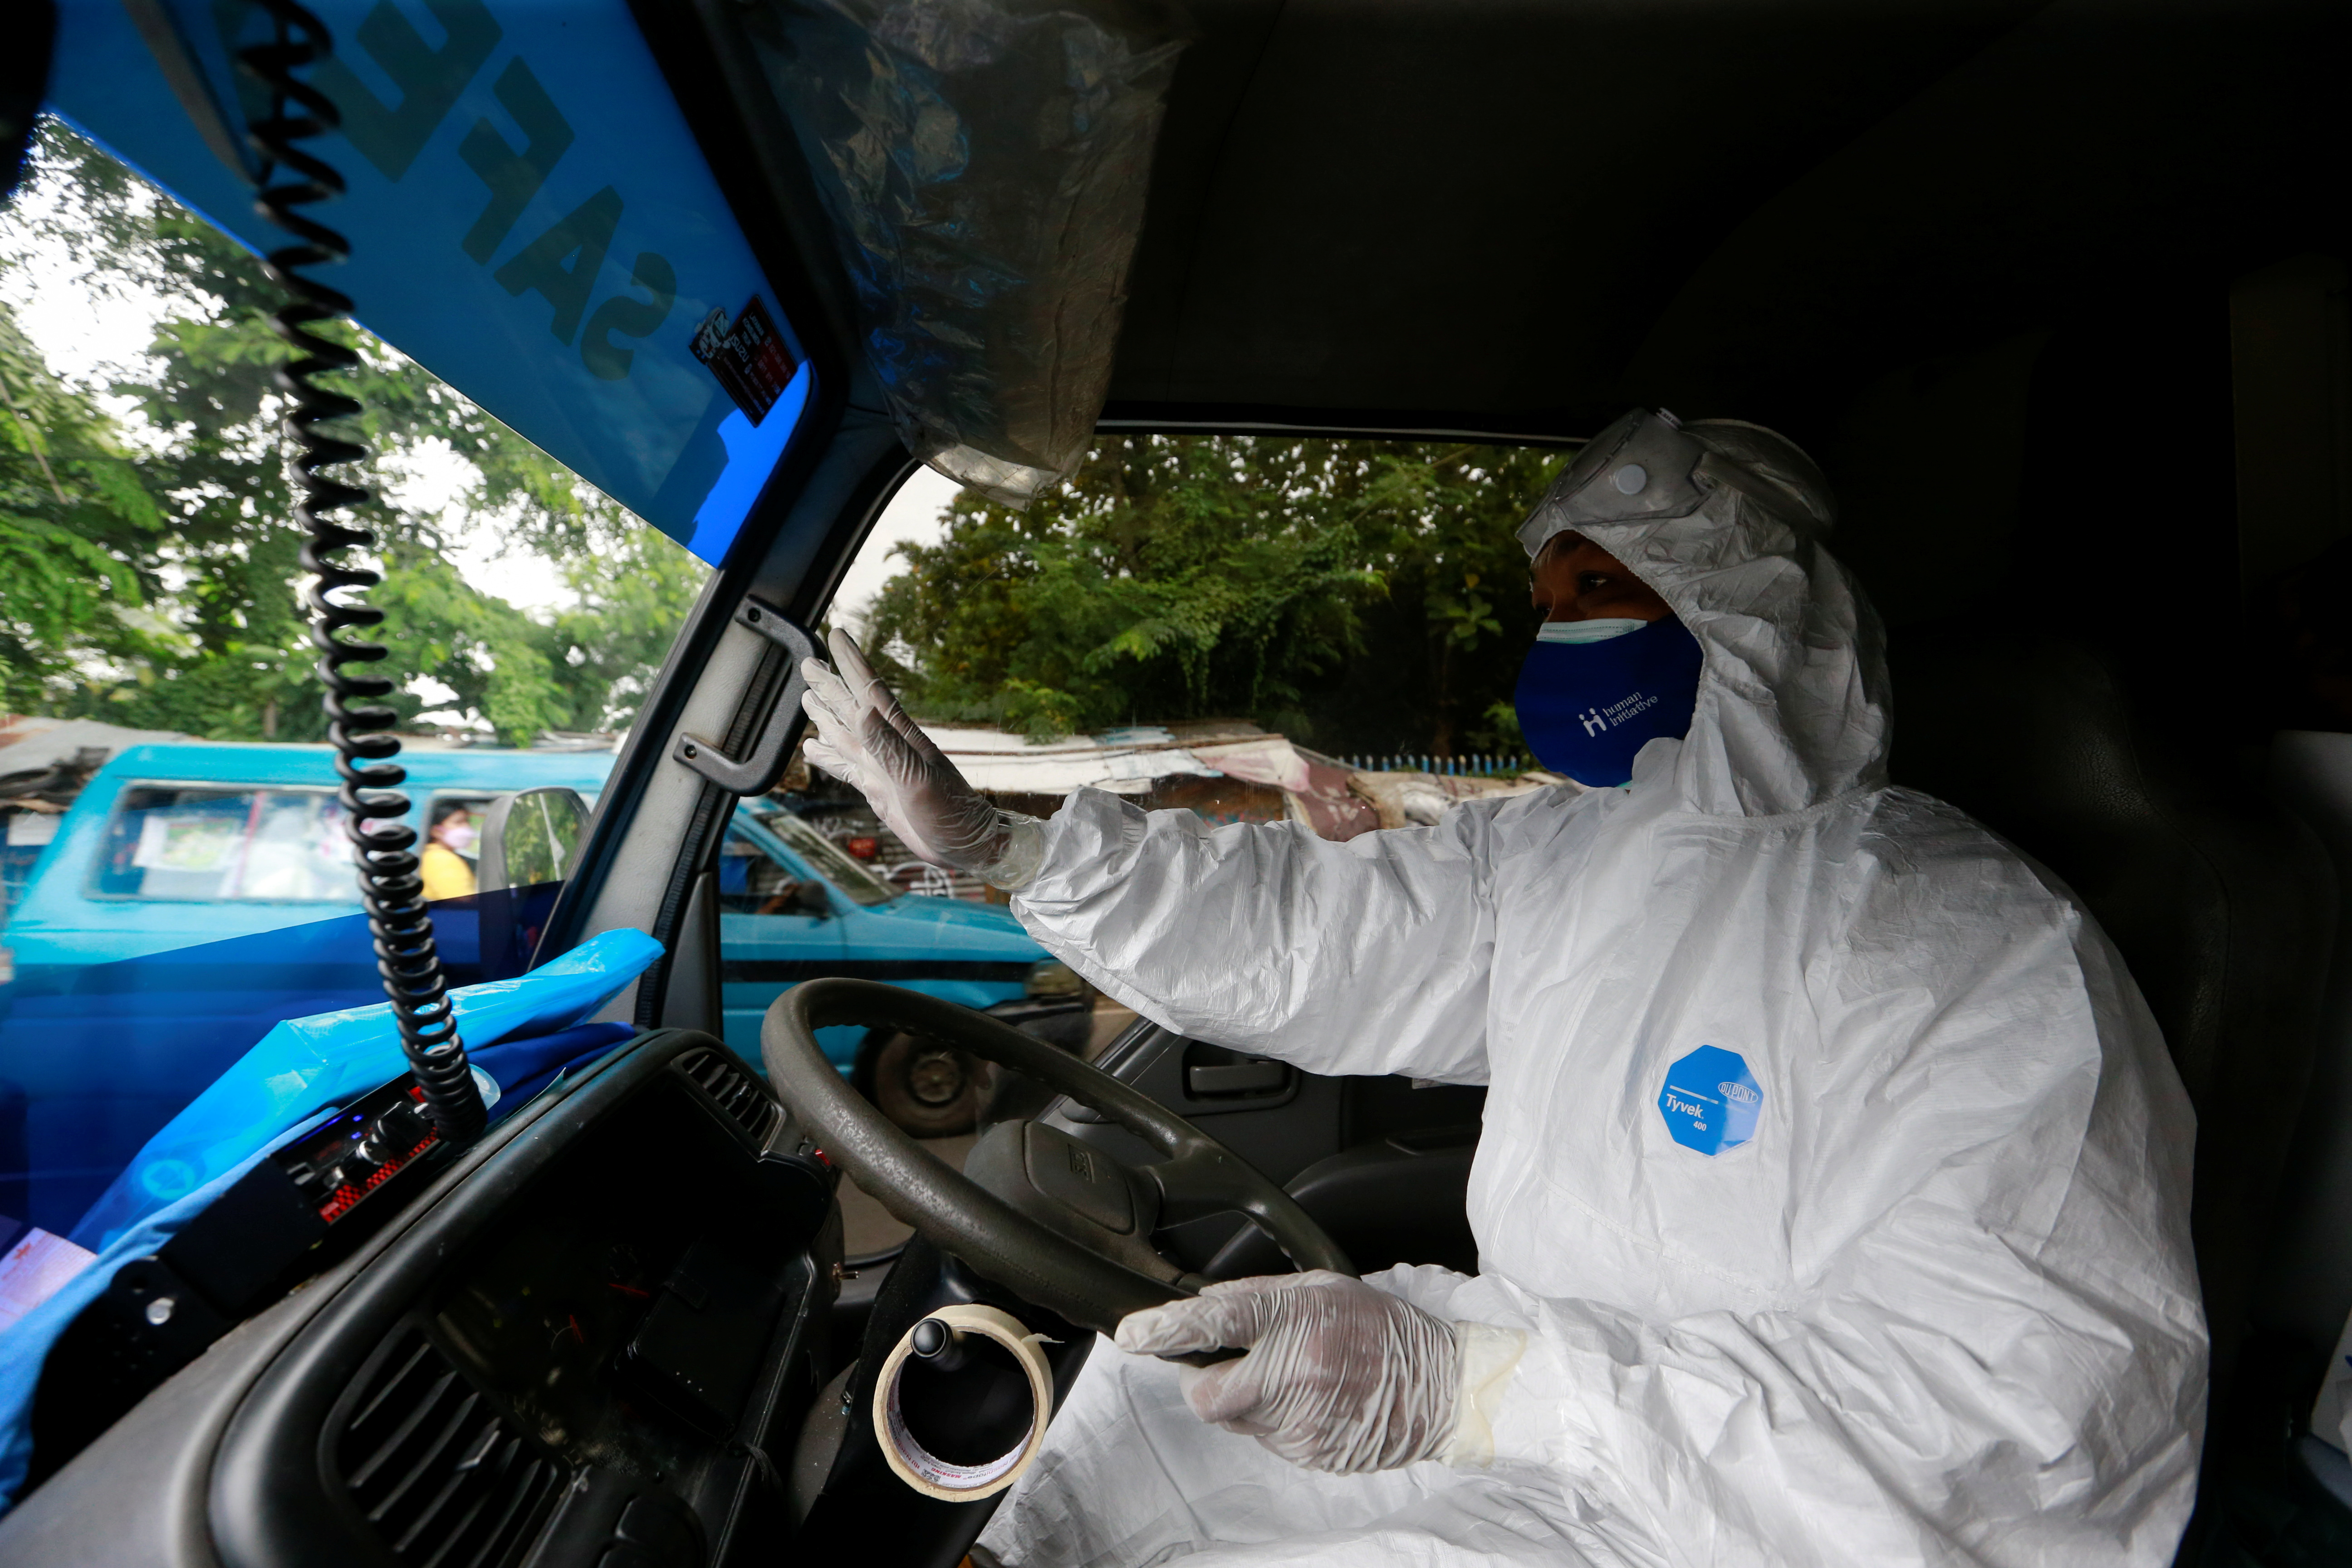 Sunaryo, 53, drives an ambulance as he delivers a patient suffering from coronavirus disease (COVID-19), as cases surge in Depok, on the outskirts of Jakarta, Indonesia, July 13, 2021. REUTERS/Ajeng Dinar Ulfiana